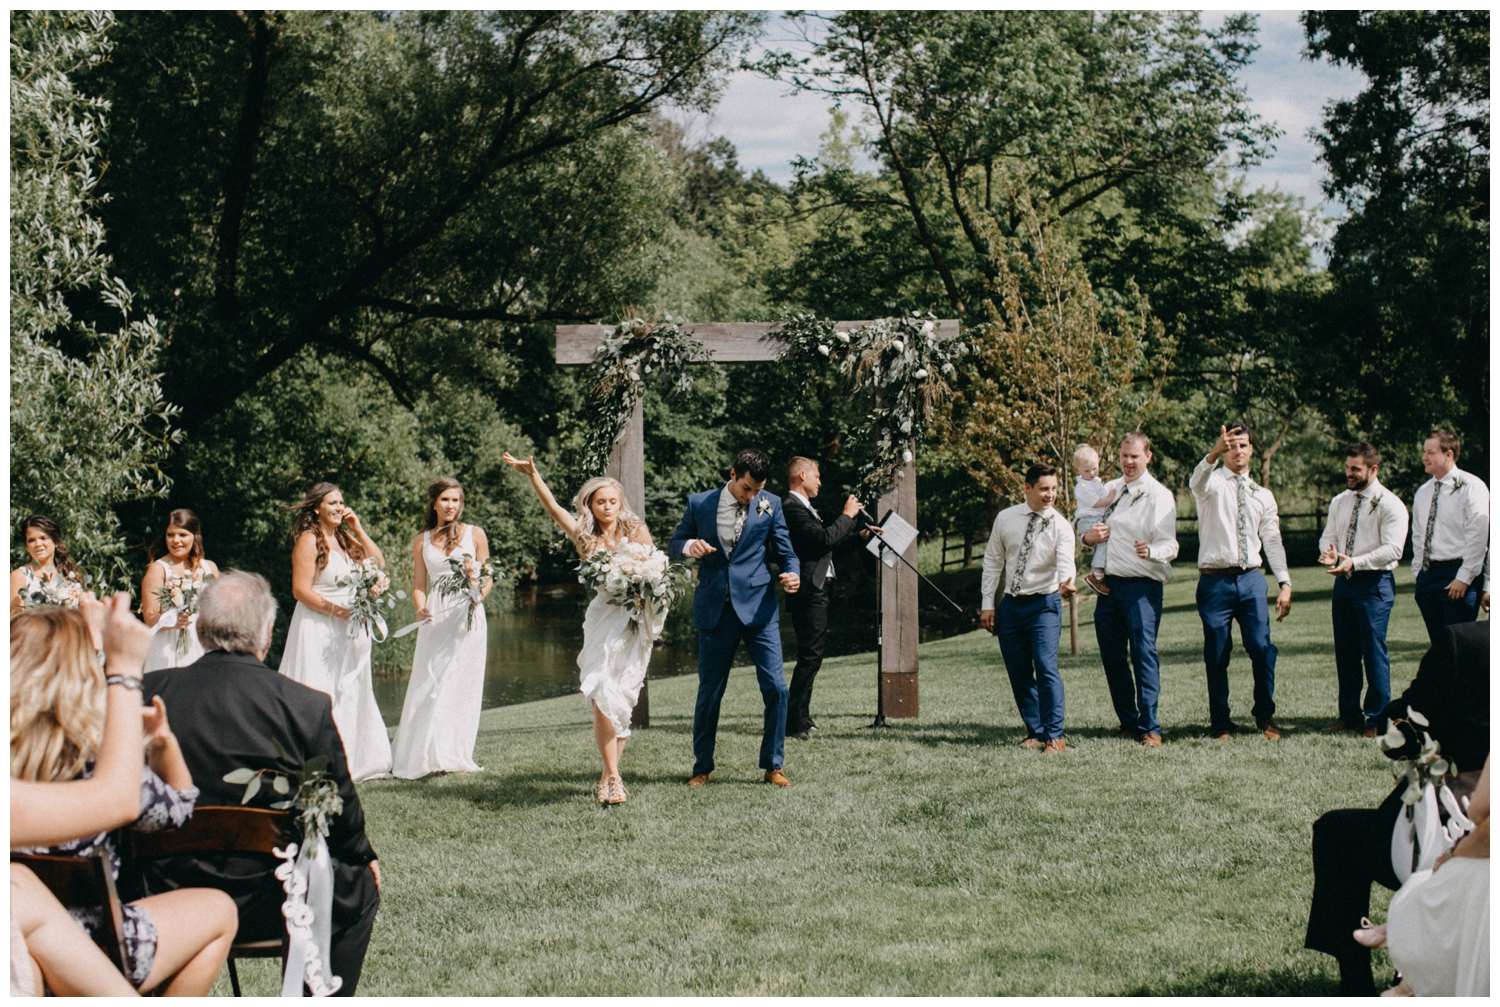 Casual and fun wedding at Creekside Farm in Rush City, MN